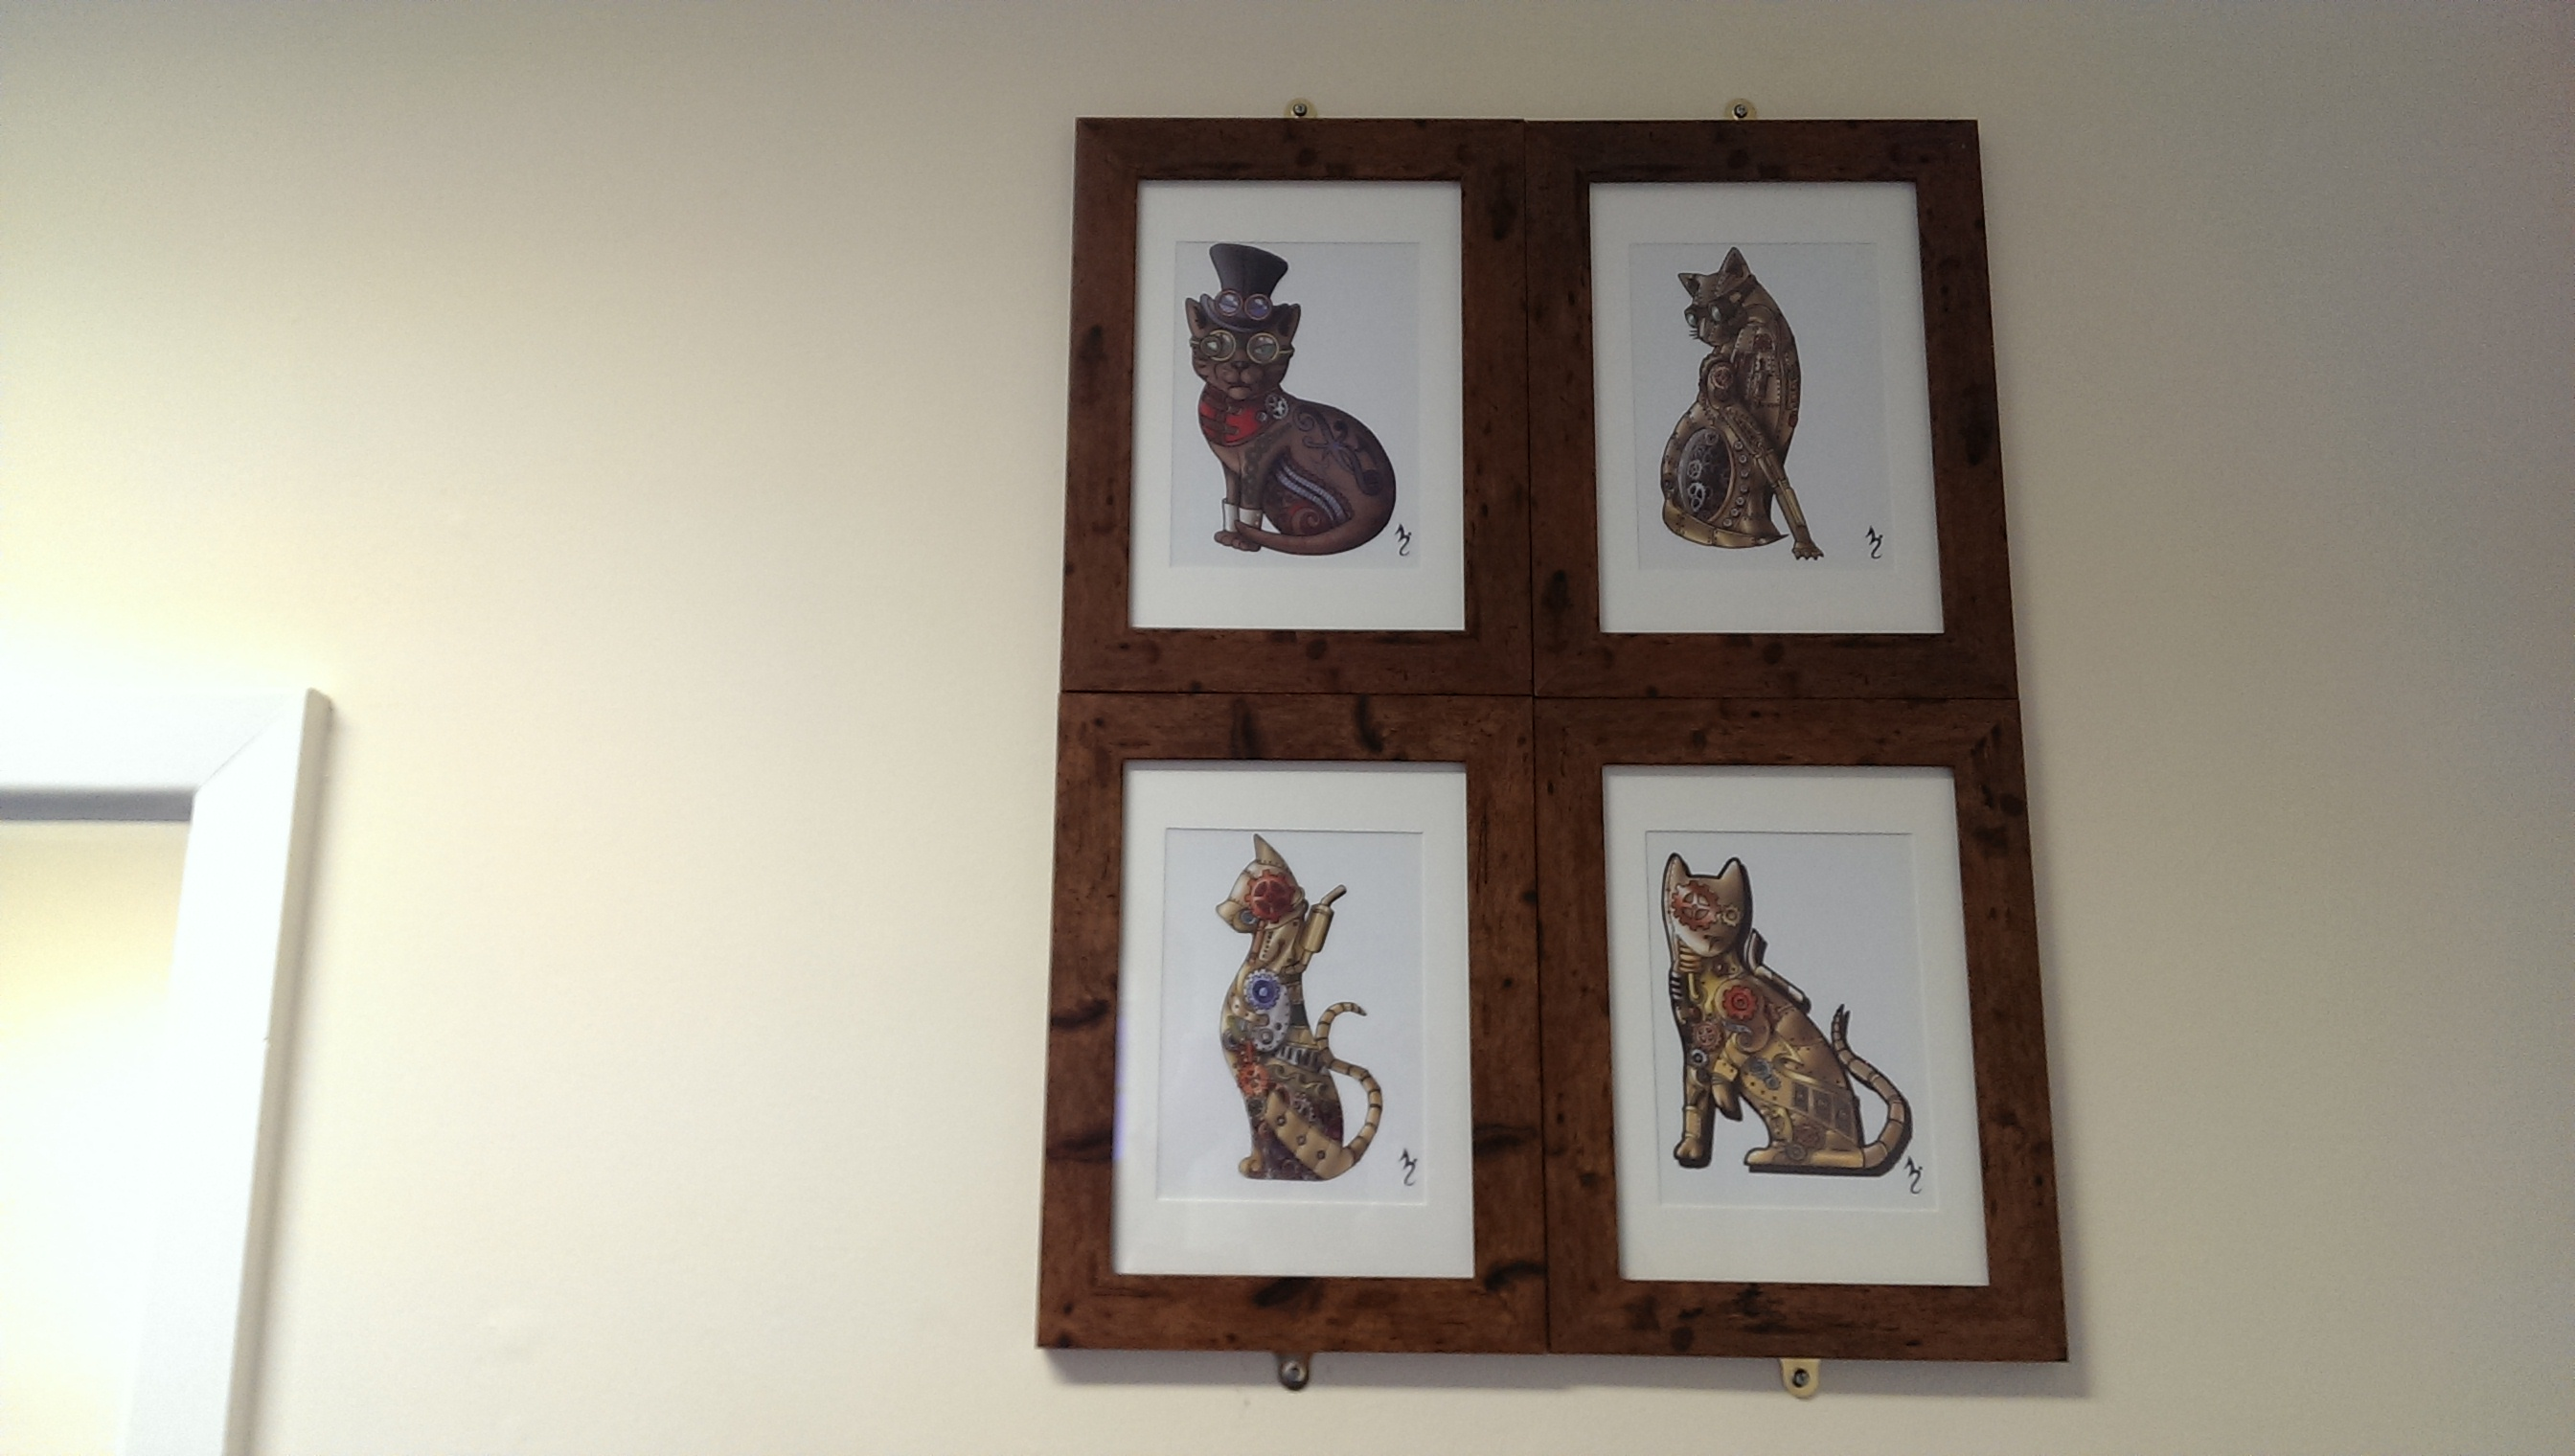 The Shadowcat Cats are Framed